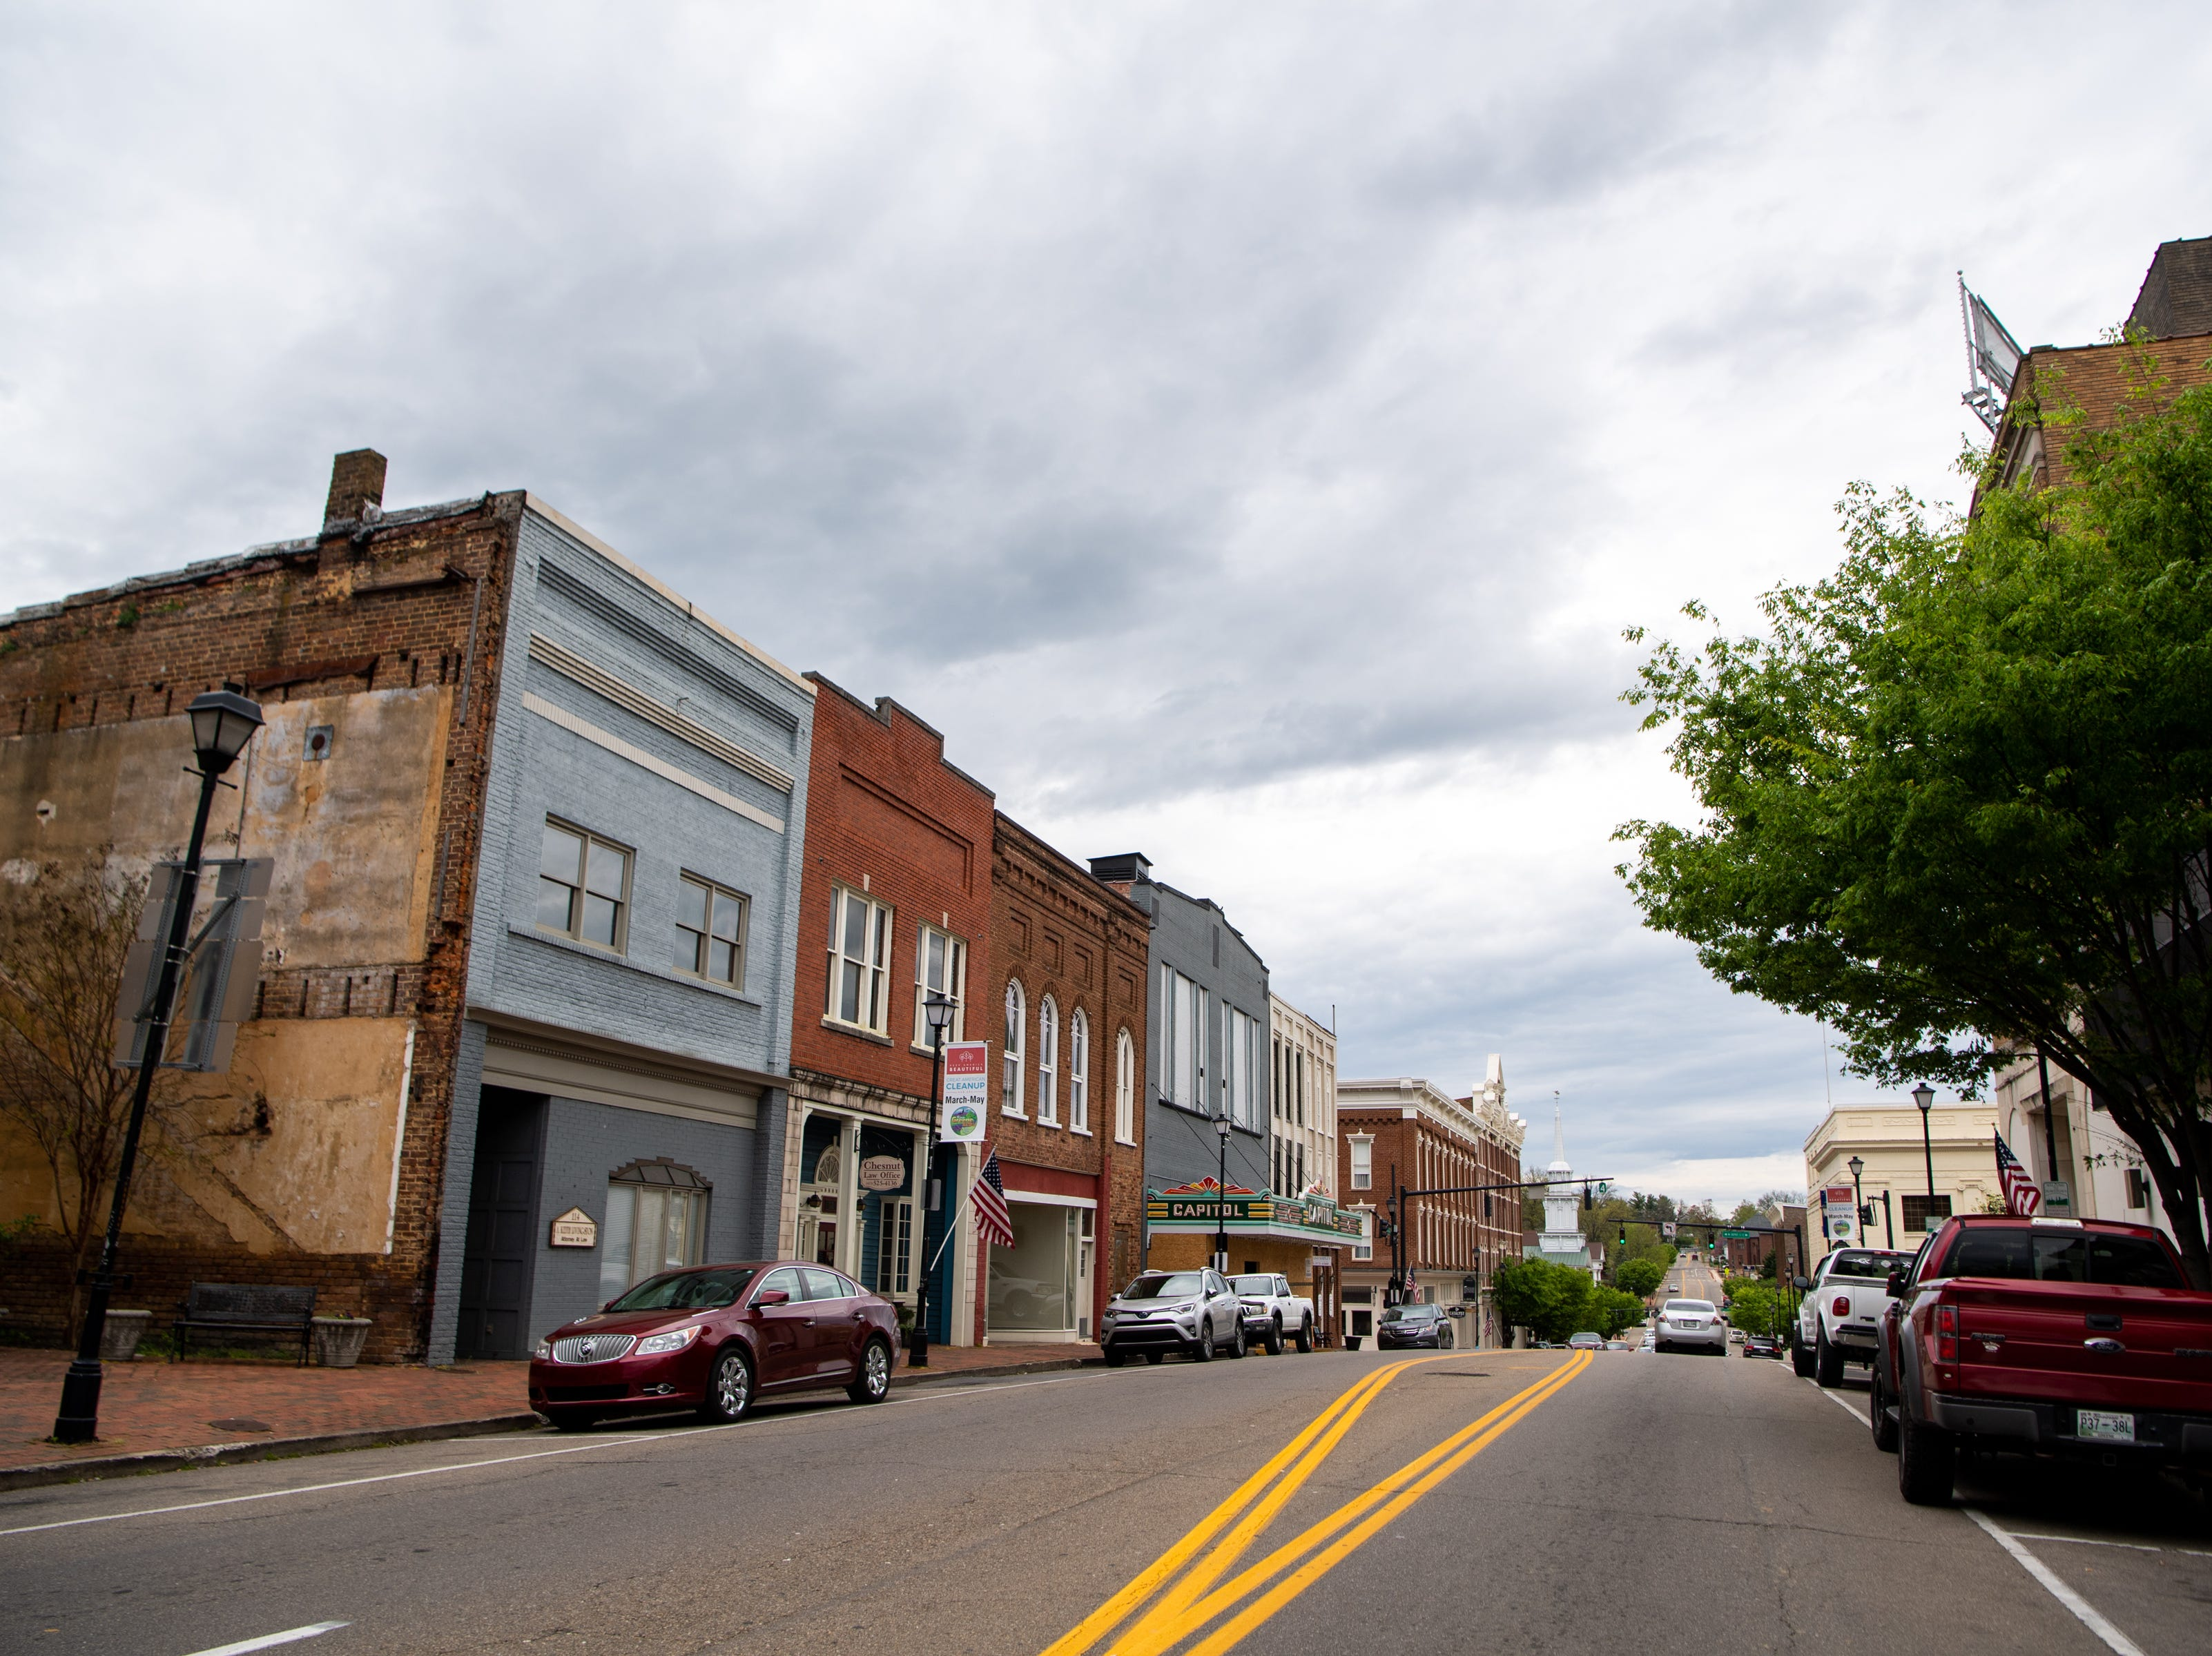 Clouds cover downtown Friday, April 12, 2019, in Greeneville, Tenn.